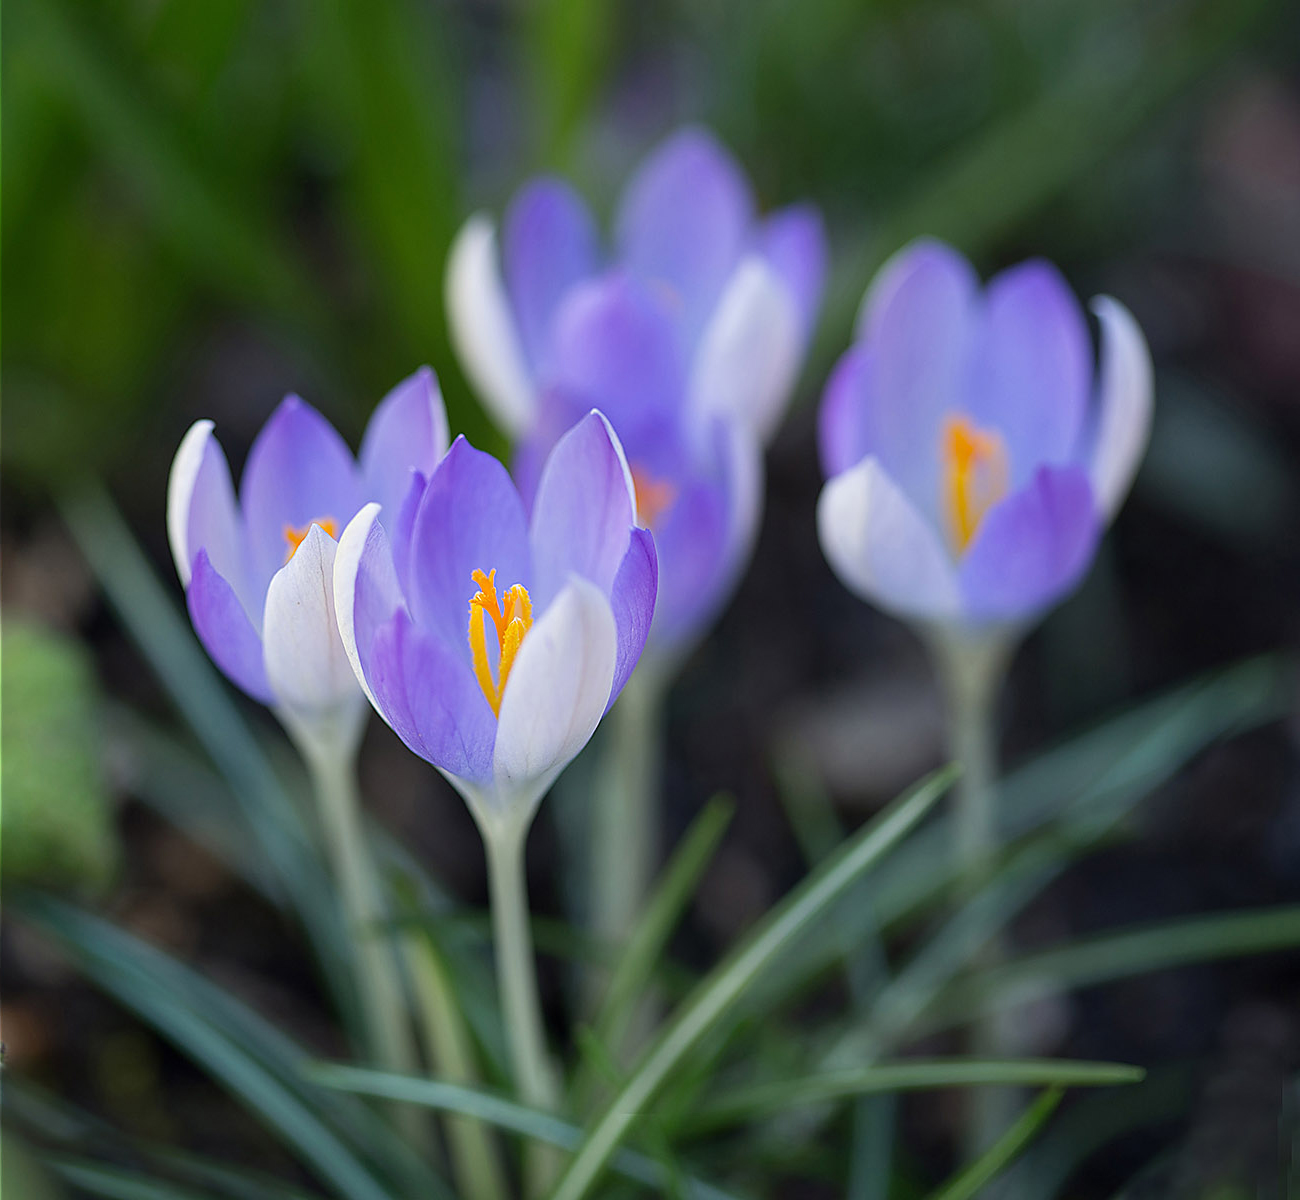 'Crocus' by Sarah Shelley